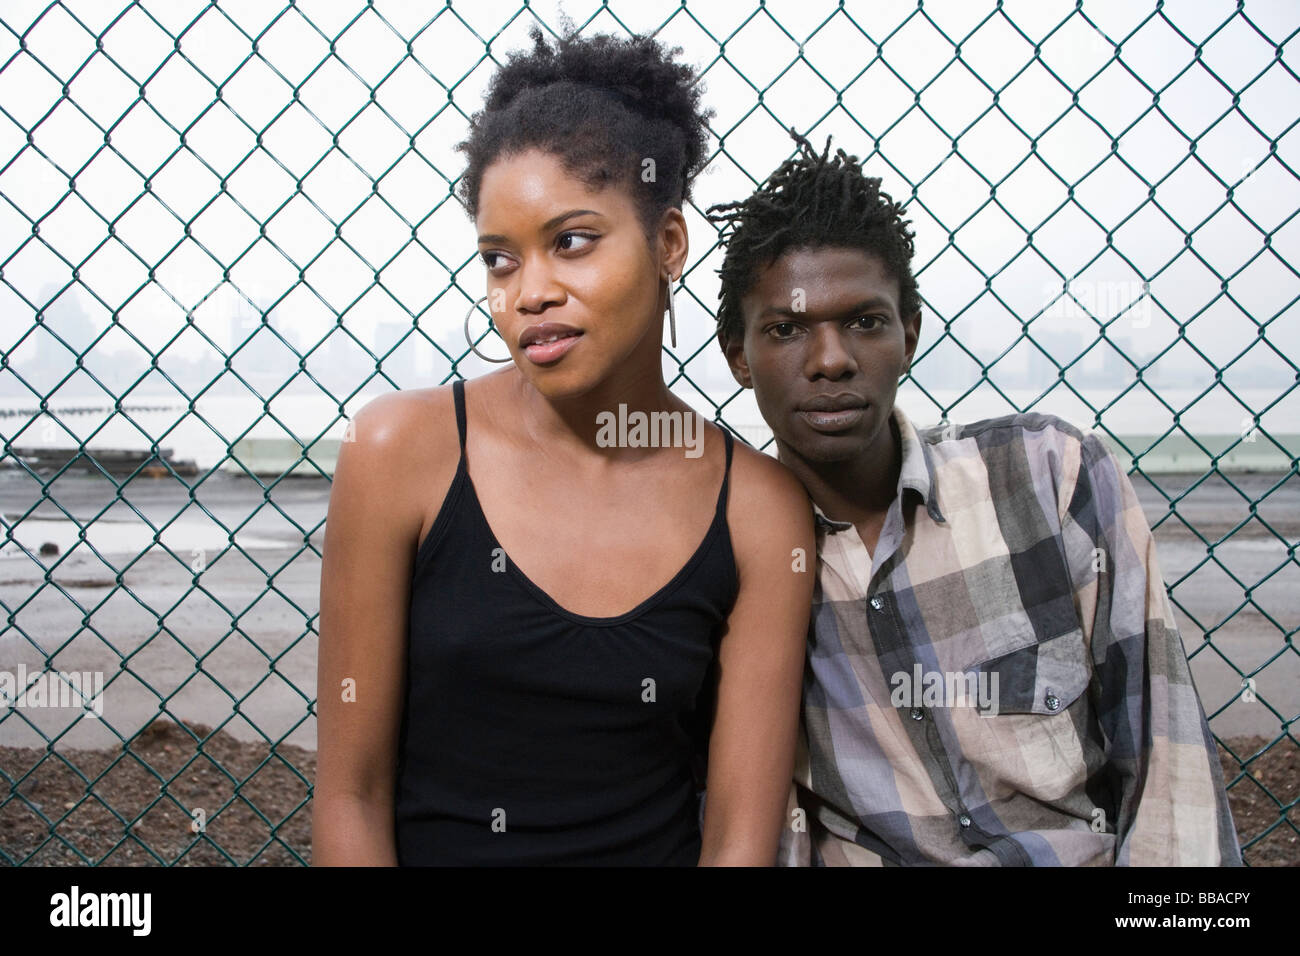 A young couple in front of a chainlink fence - Stock Image